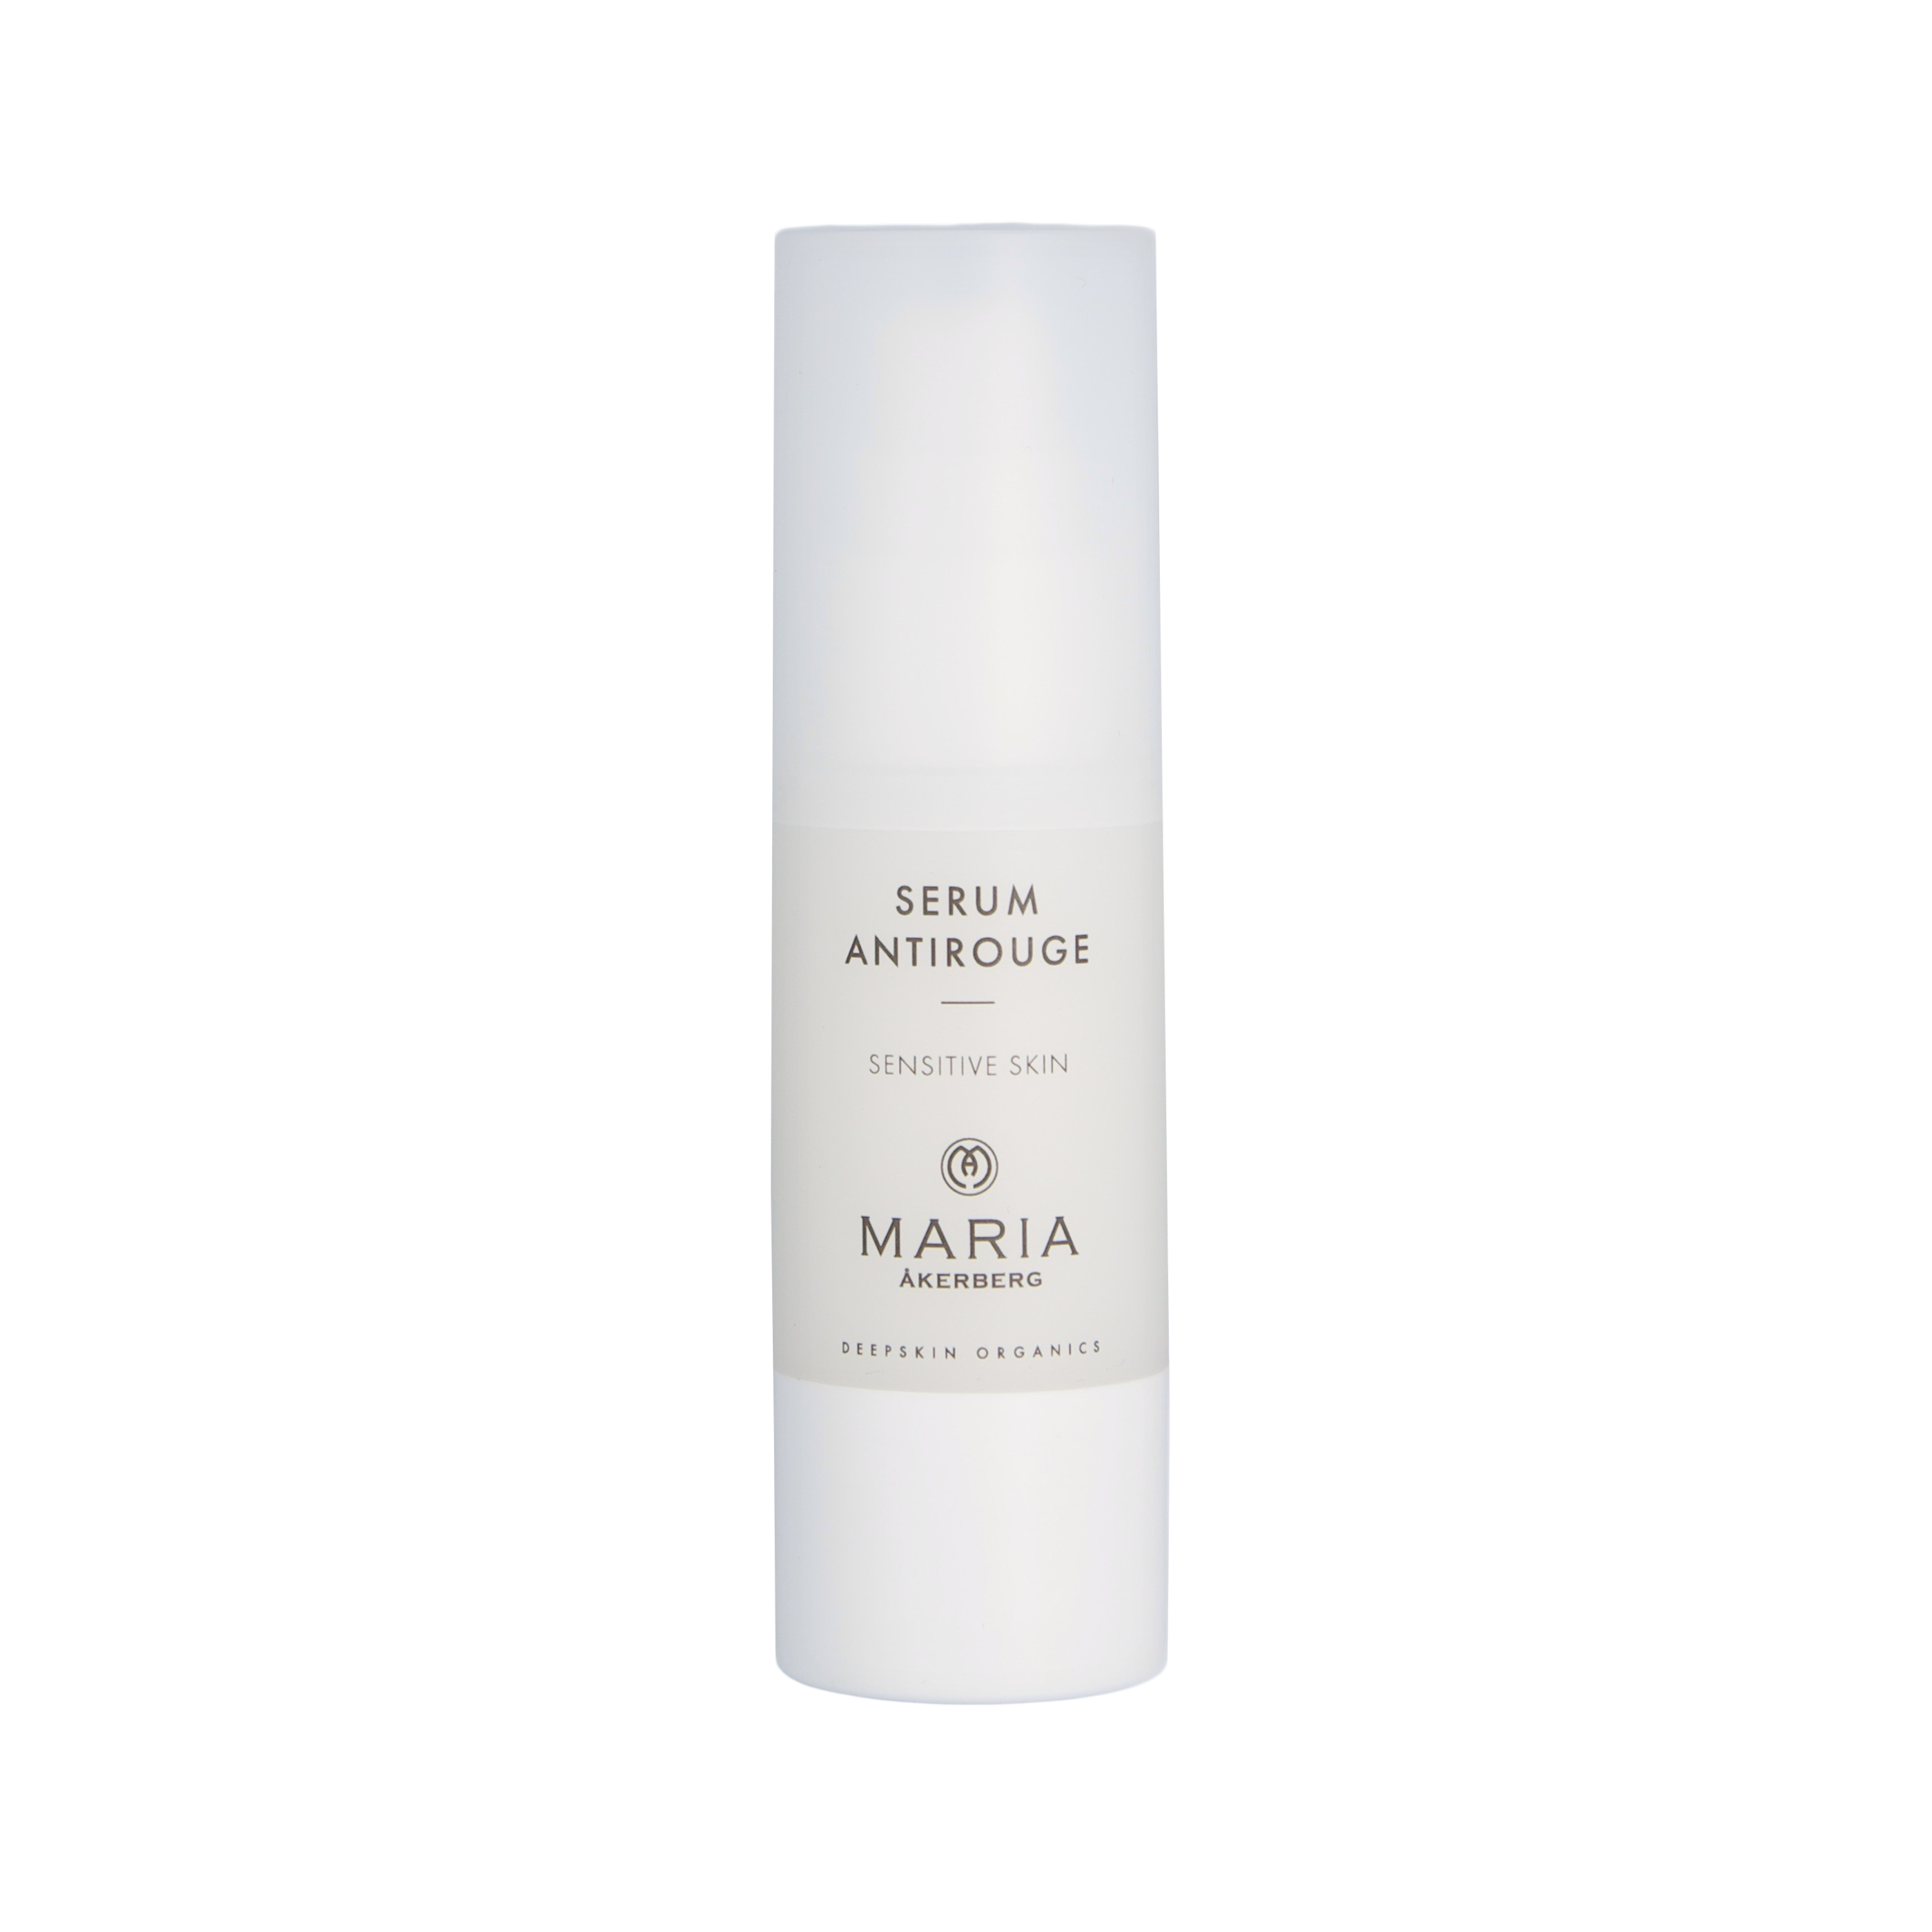 Serum Antirouge 30 ml